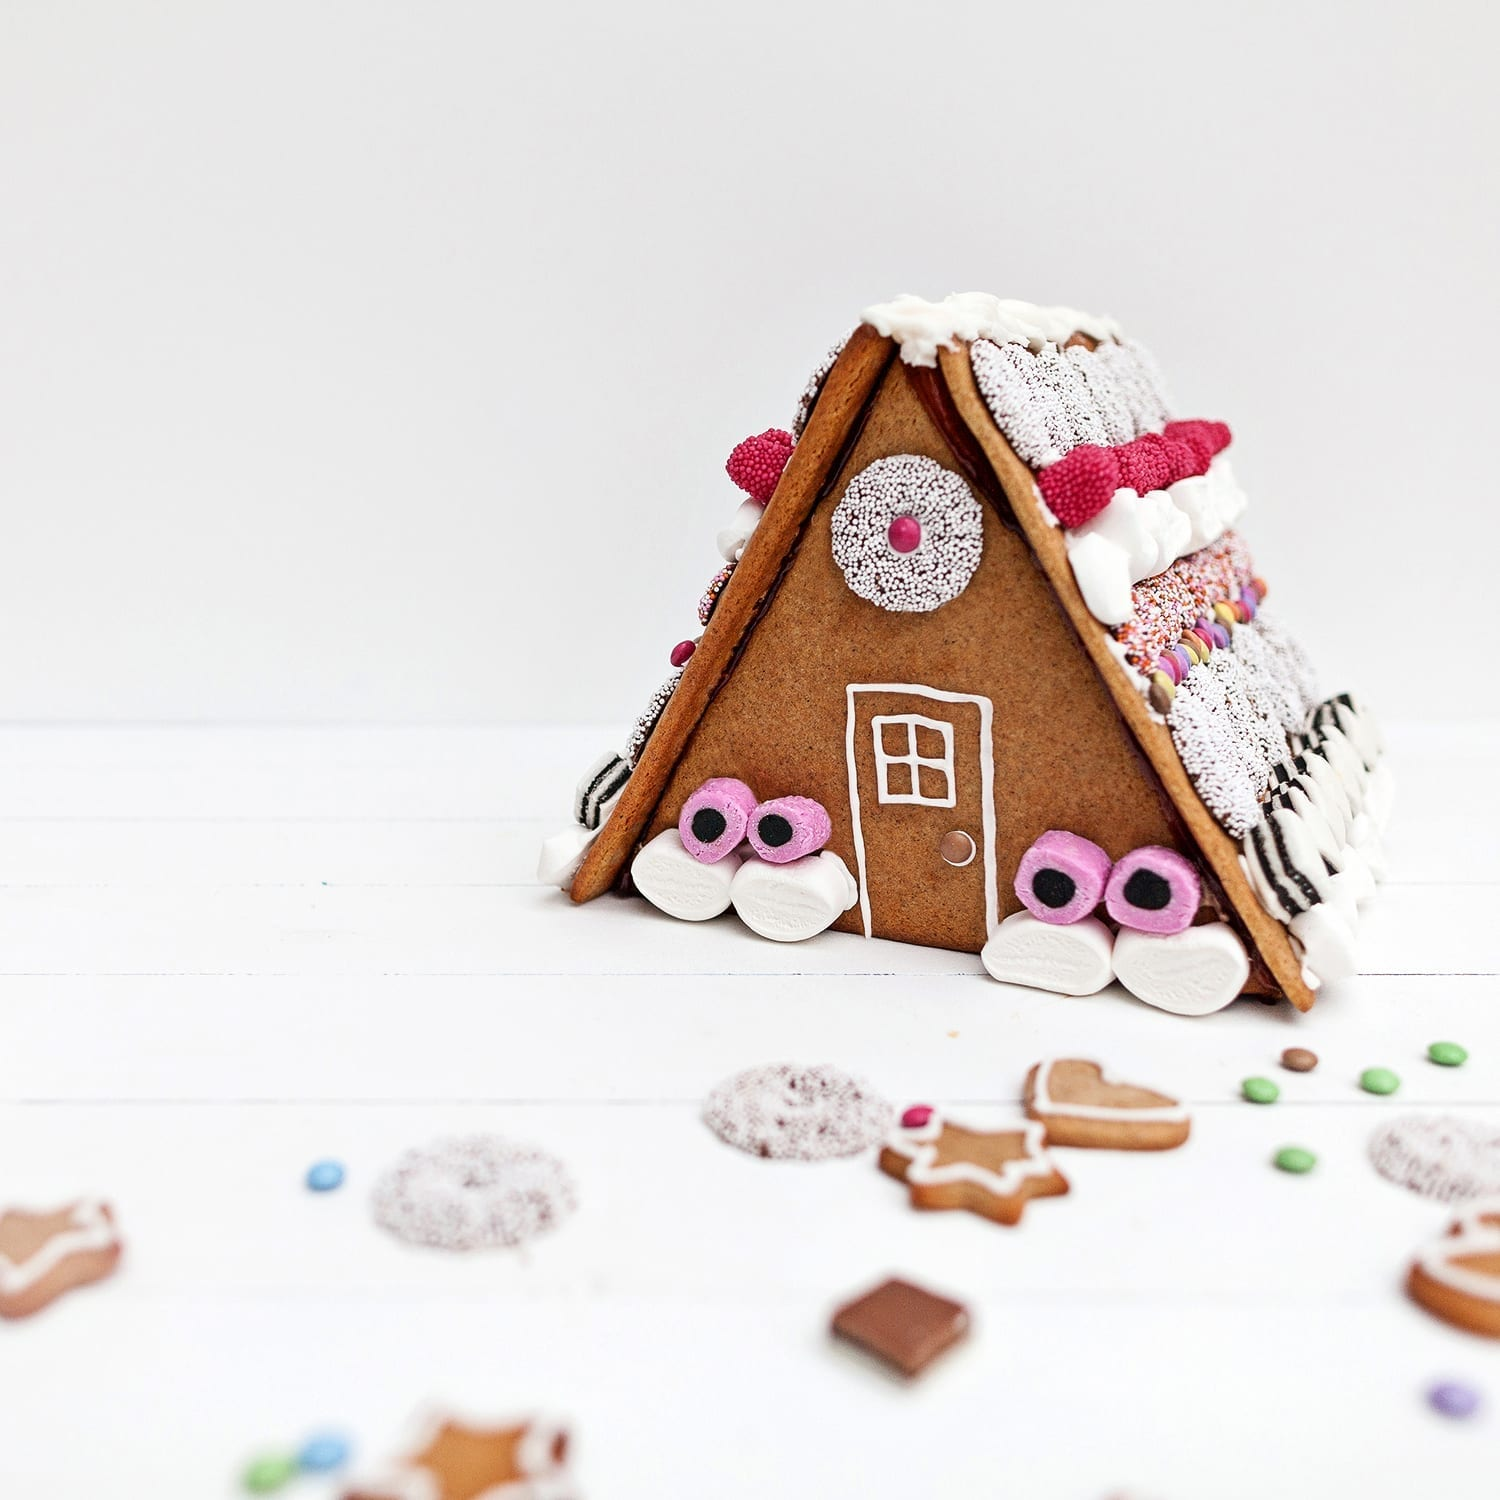 homemade scandinavian gingerbread house with lots of sweets on a white surface and with gingerbread men